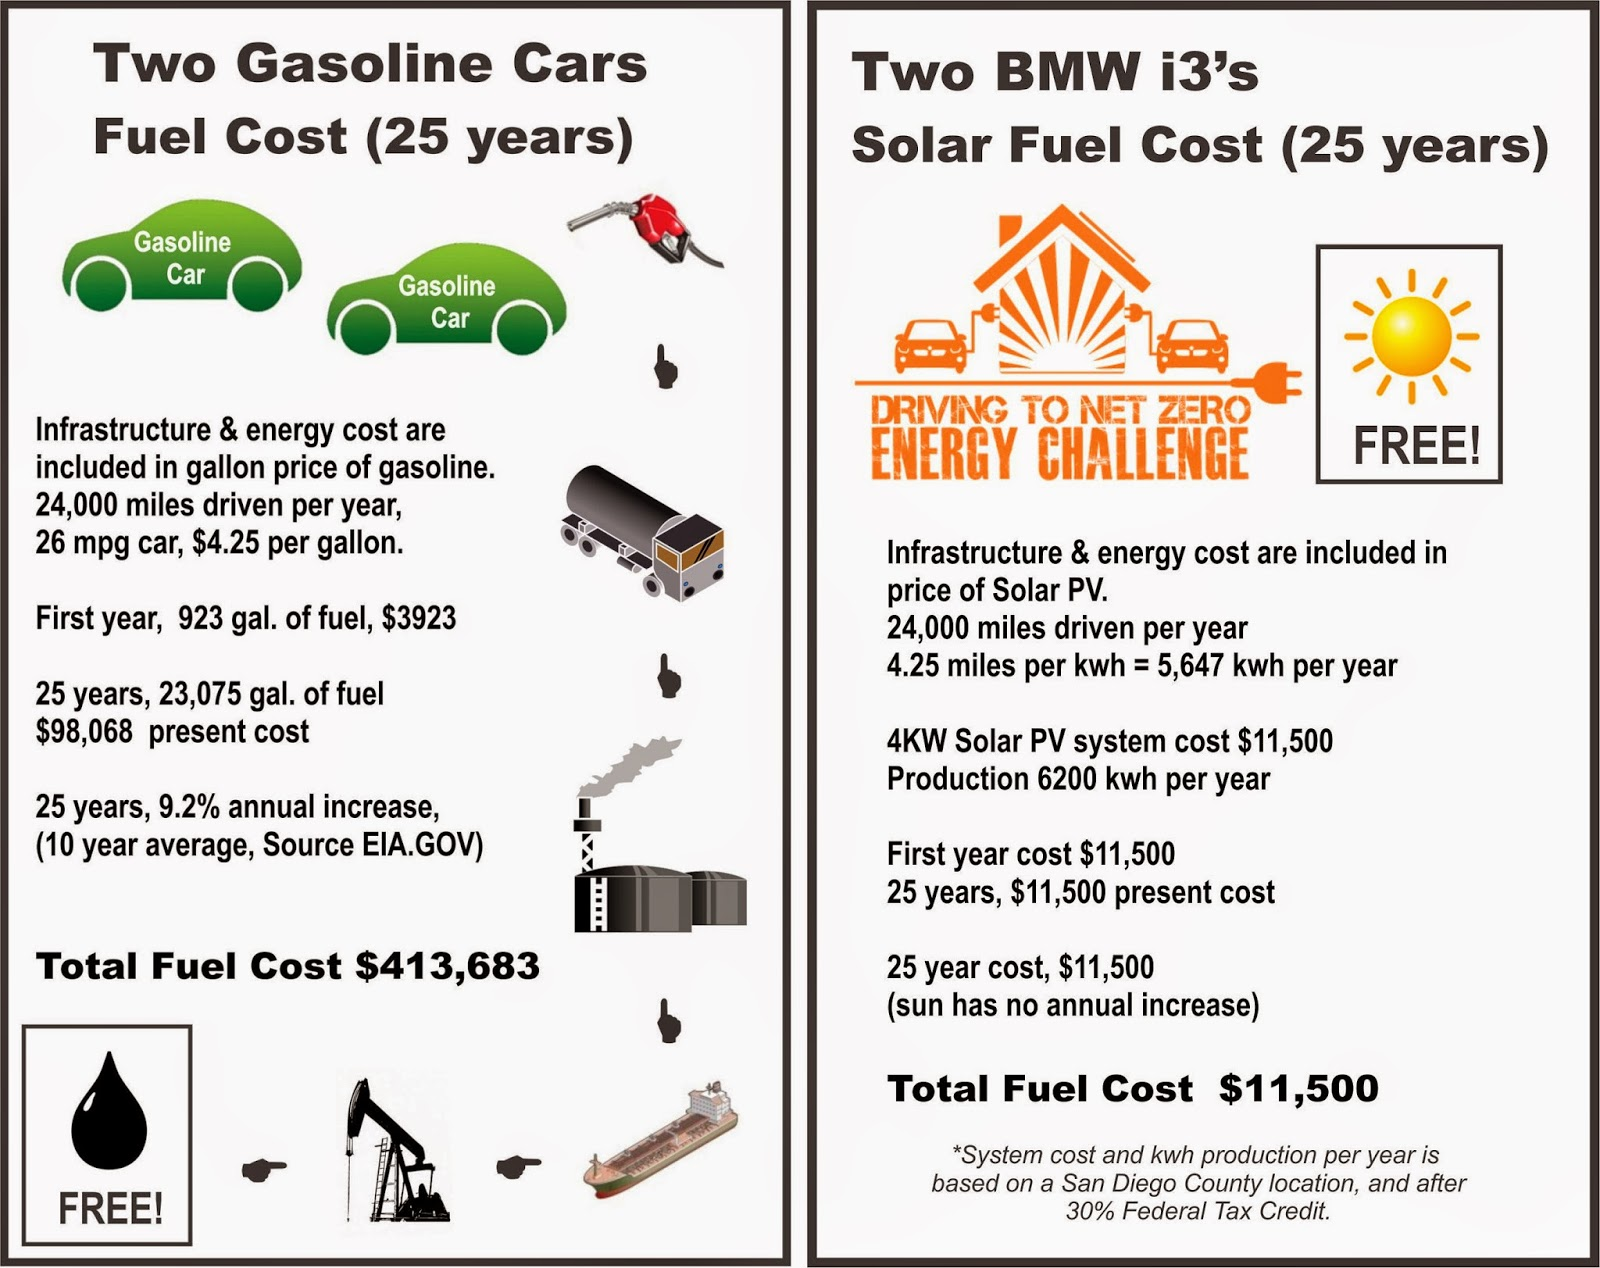 Bmw i3 39 s the drive to net zero energy solar electricity the low cost fuel - Electric vs gas heating cost pros and cons ...